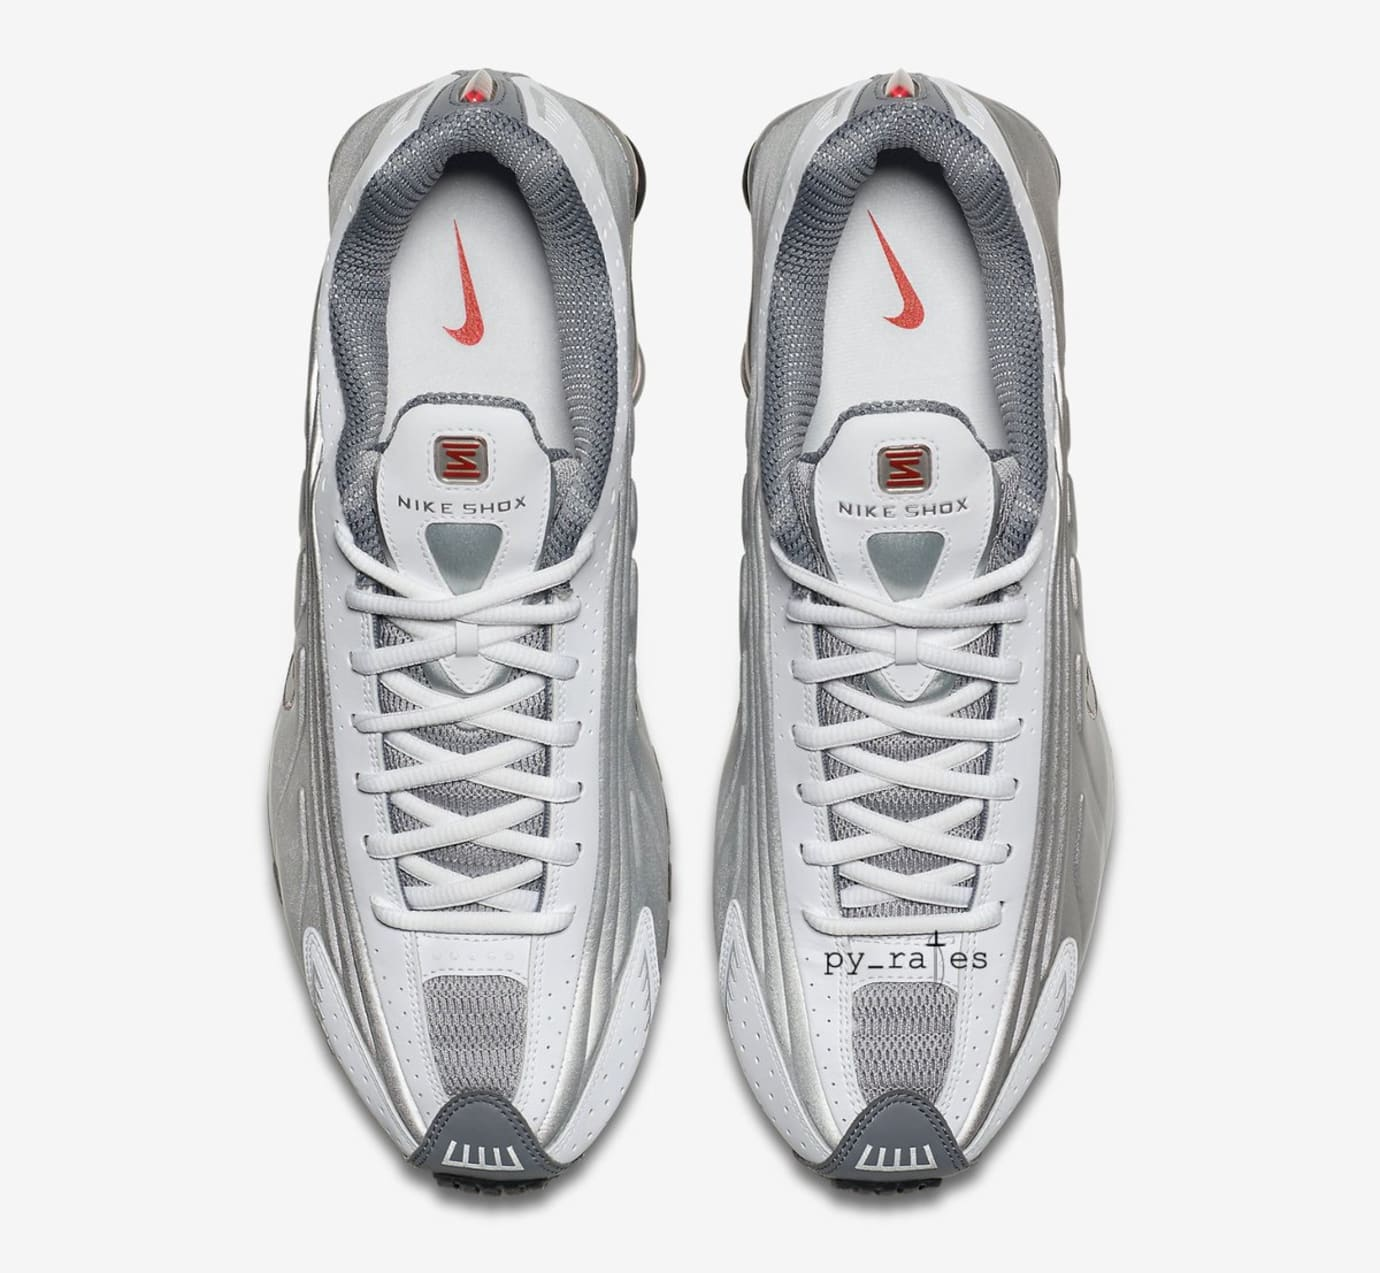 ea0f4acf1065 Nike Shox R4  White Comet Red Black Metallic Silver  Release Date ...